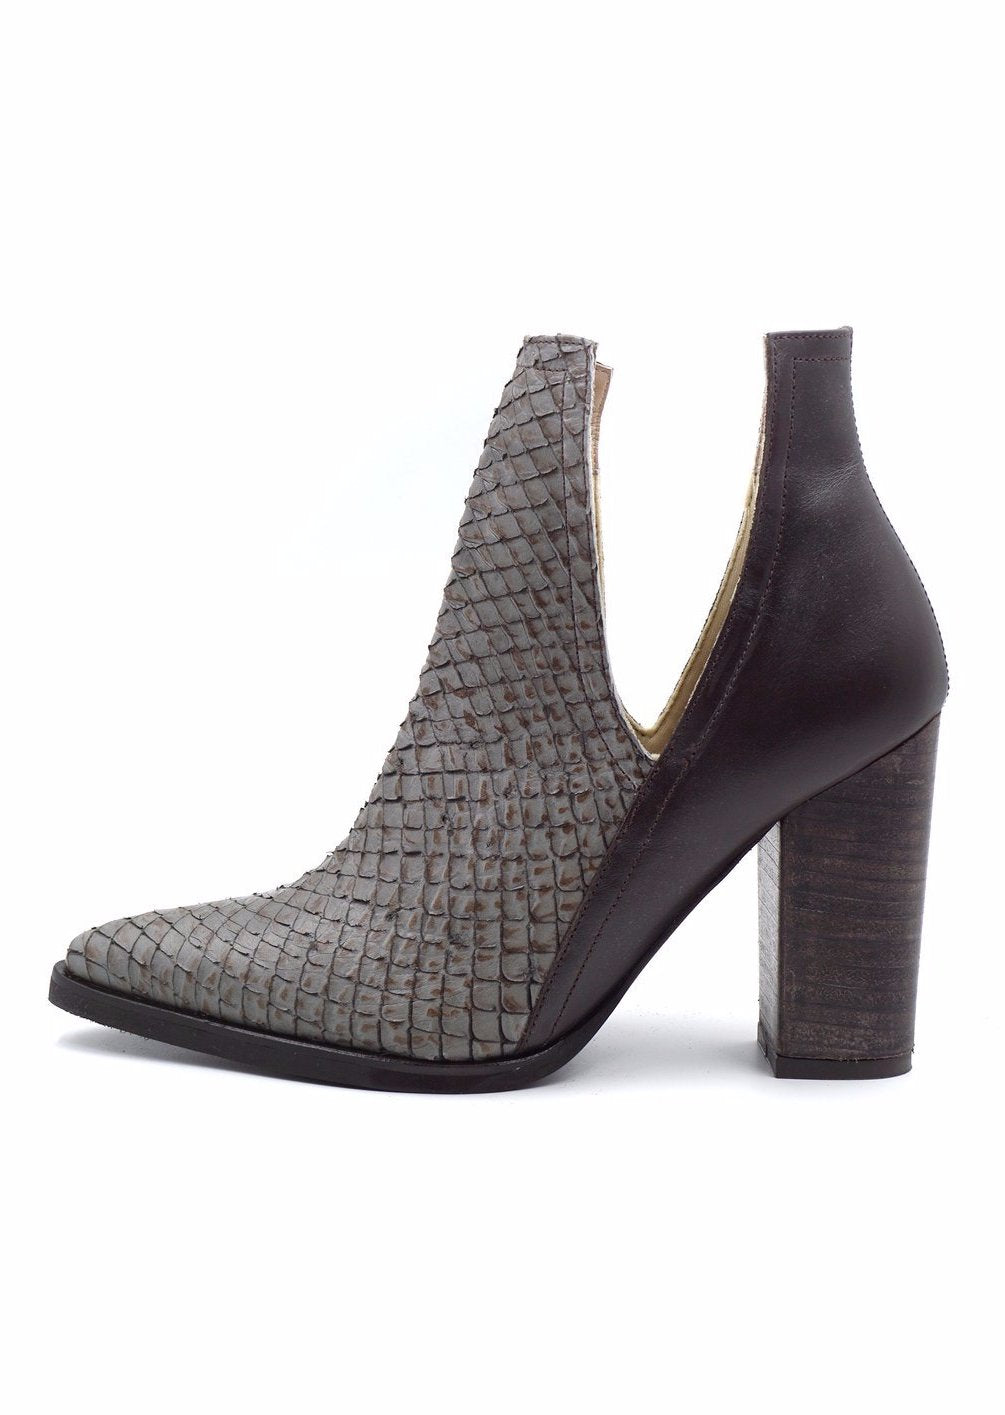 Kaanas Merida Open Ankle Stacked Heel Bootie in Grey 741W